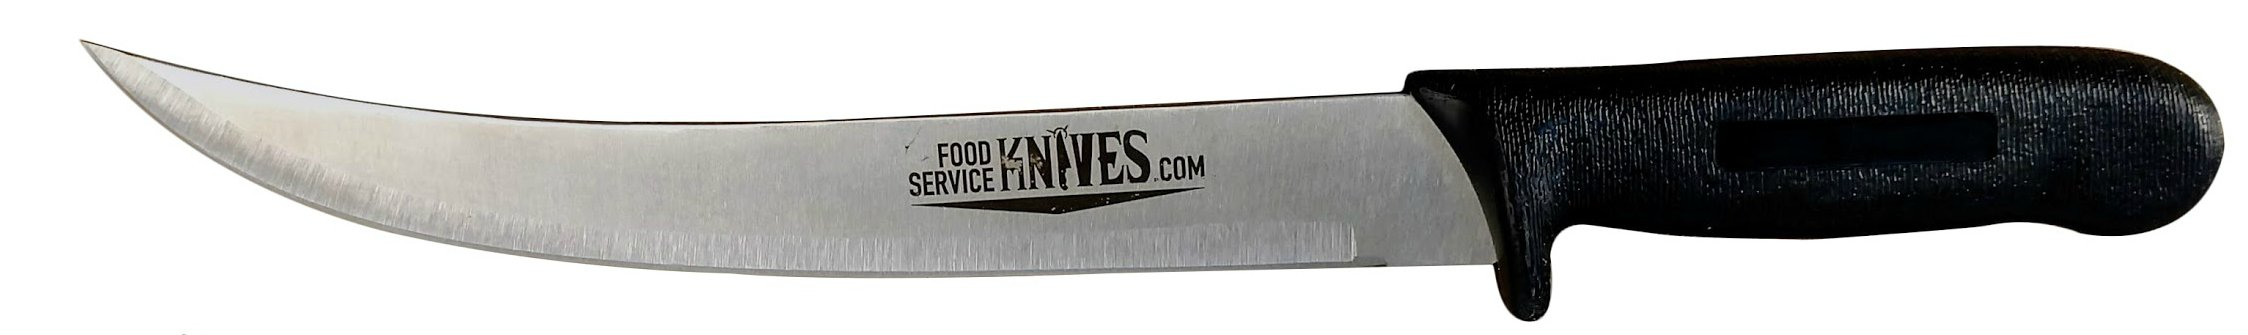 "10"" Breaking / Butcher Cimiter Curved Blade Black Handle Food Service Knives"